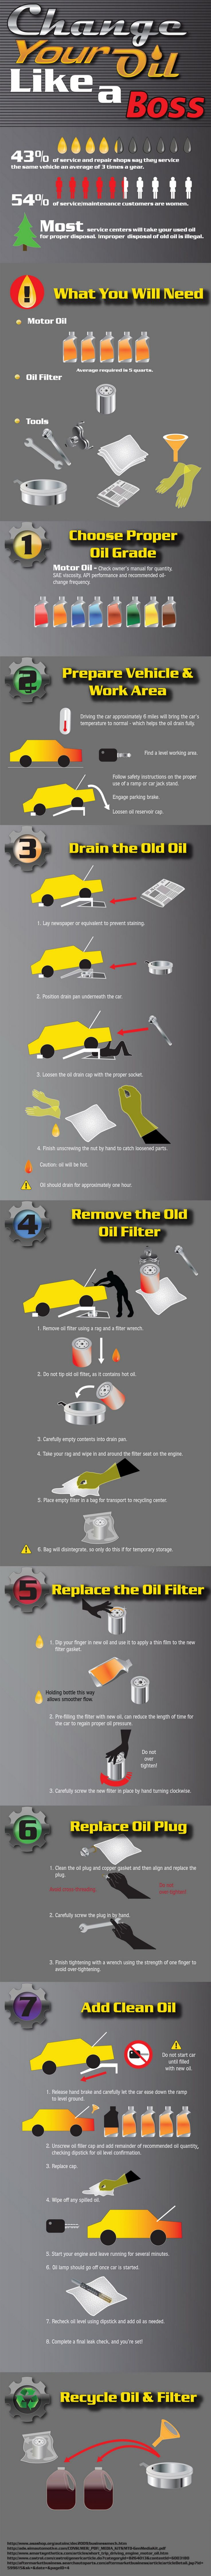 How to..Change Your Oil Like a Boss #Infographic